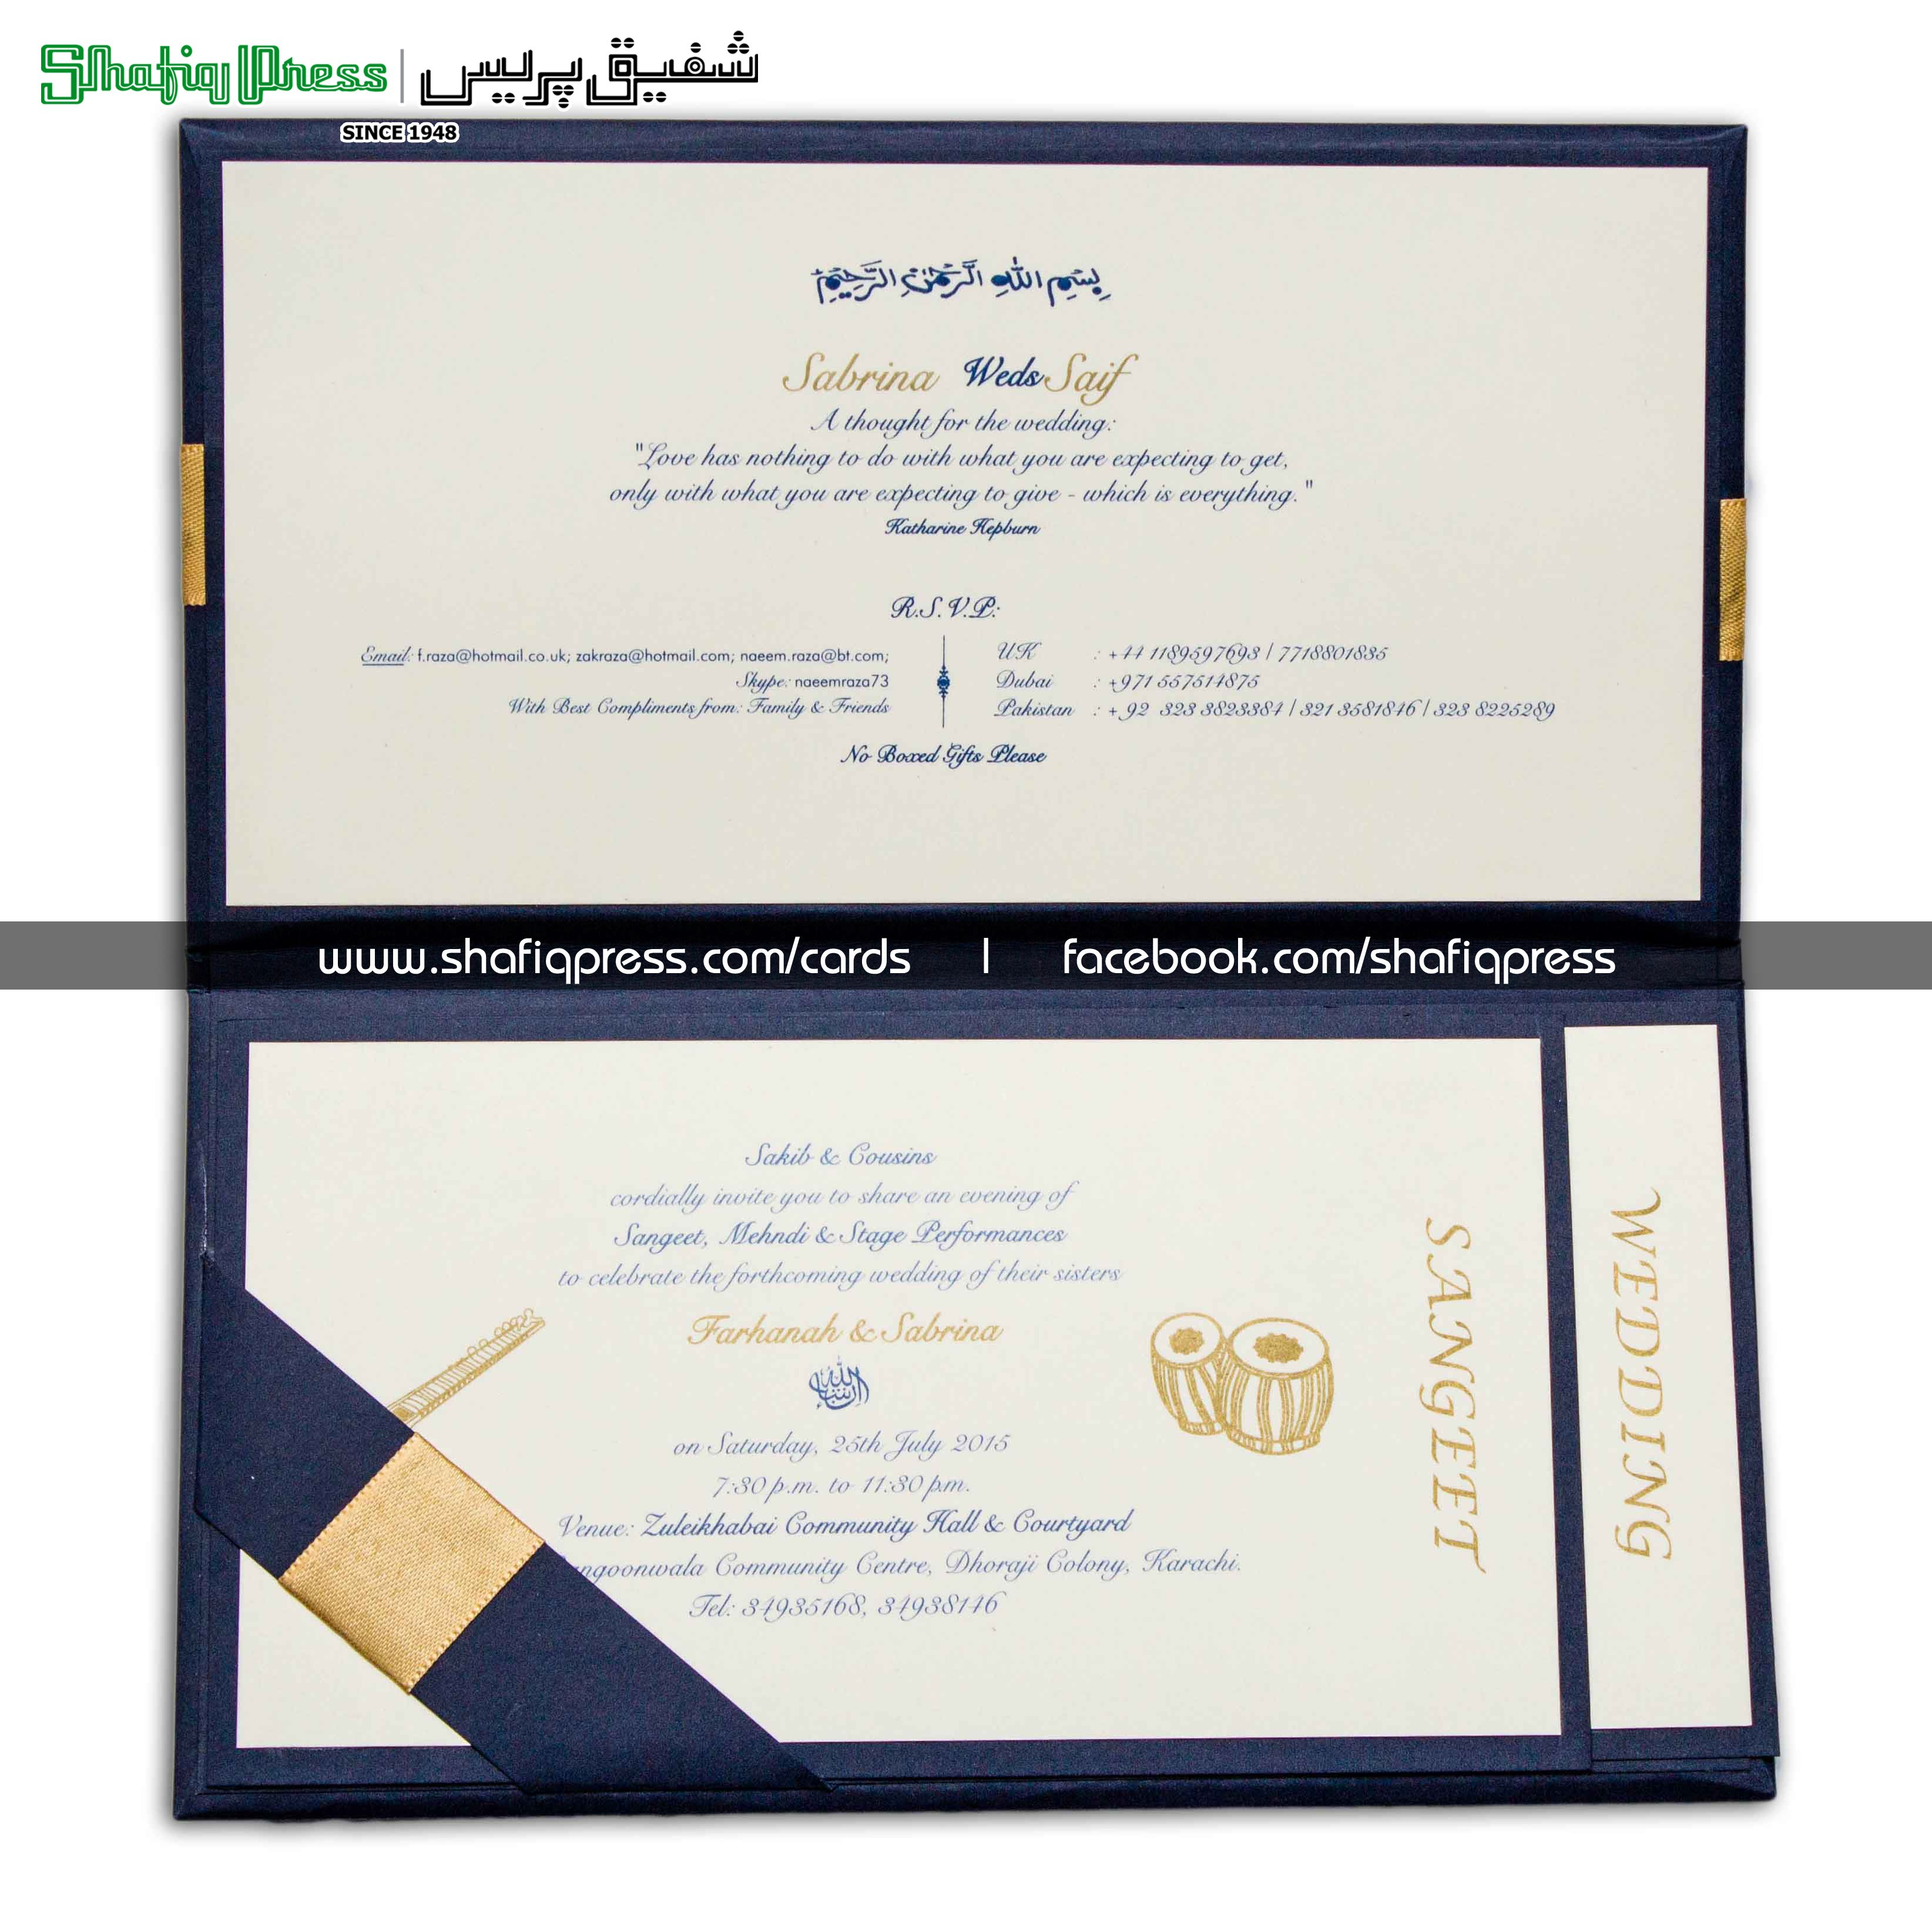 Shafiqpress shadi cards wedding card printing wedding shafiqpress shadi cards wedding card printing wedding invitation cards shadi card design monicamarmolfo Image collections